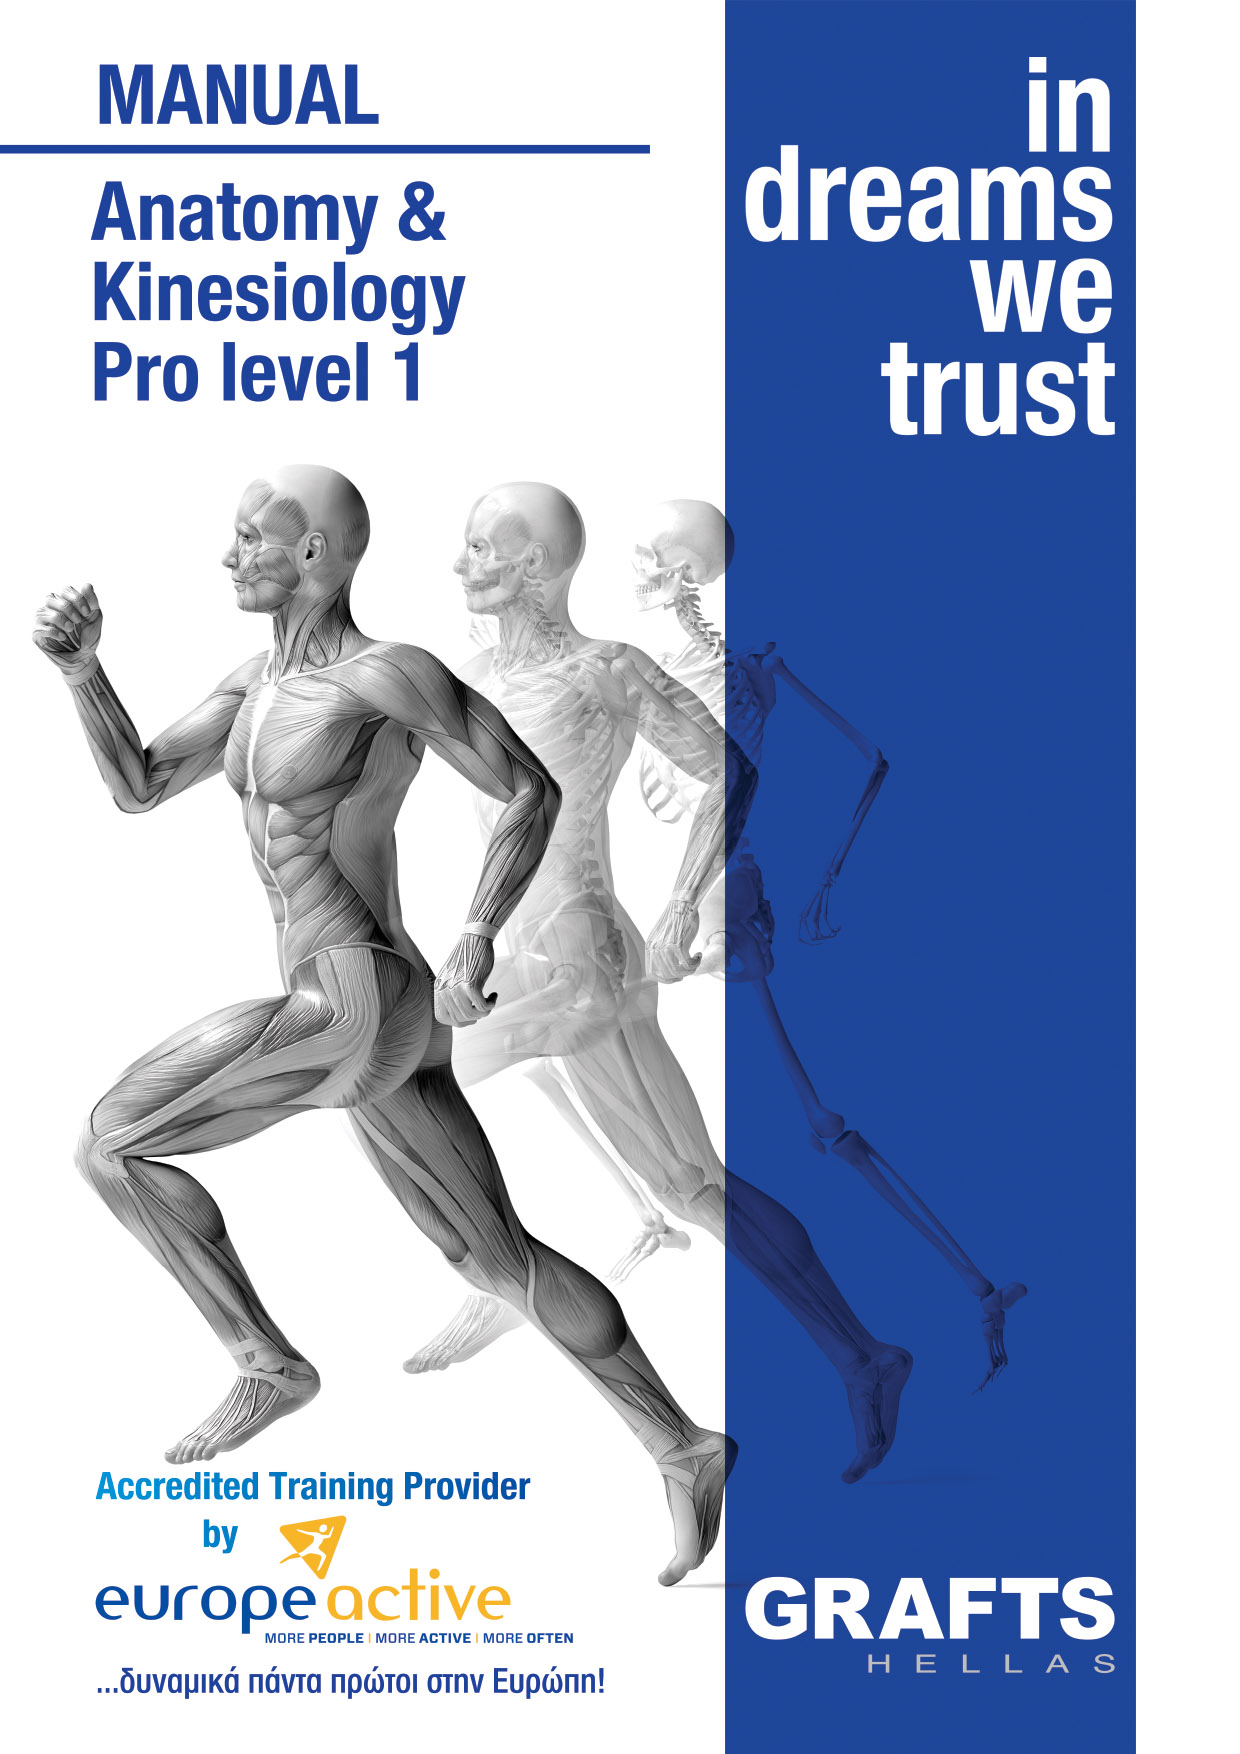 Grafts Hellas manual - Anatomy and Kinesiology - Pro Level 1